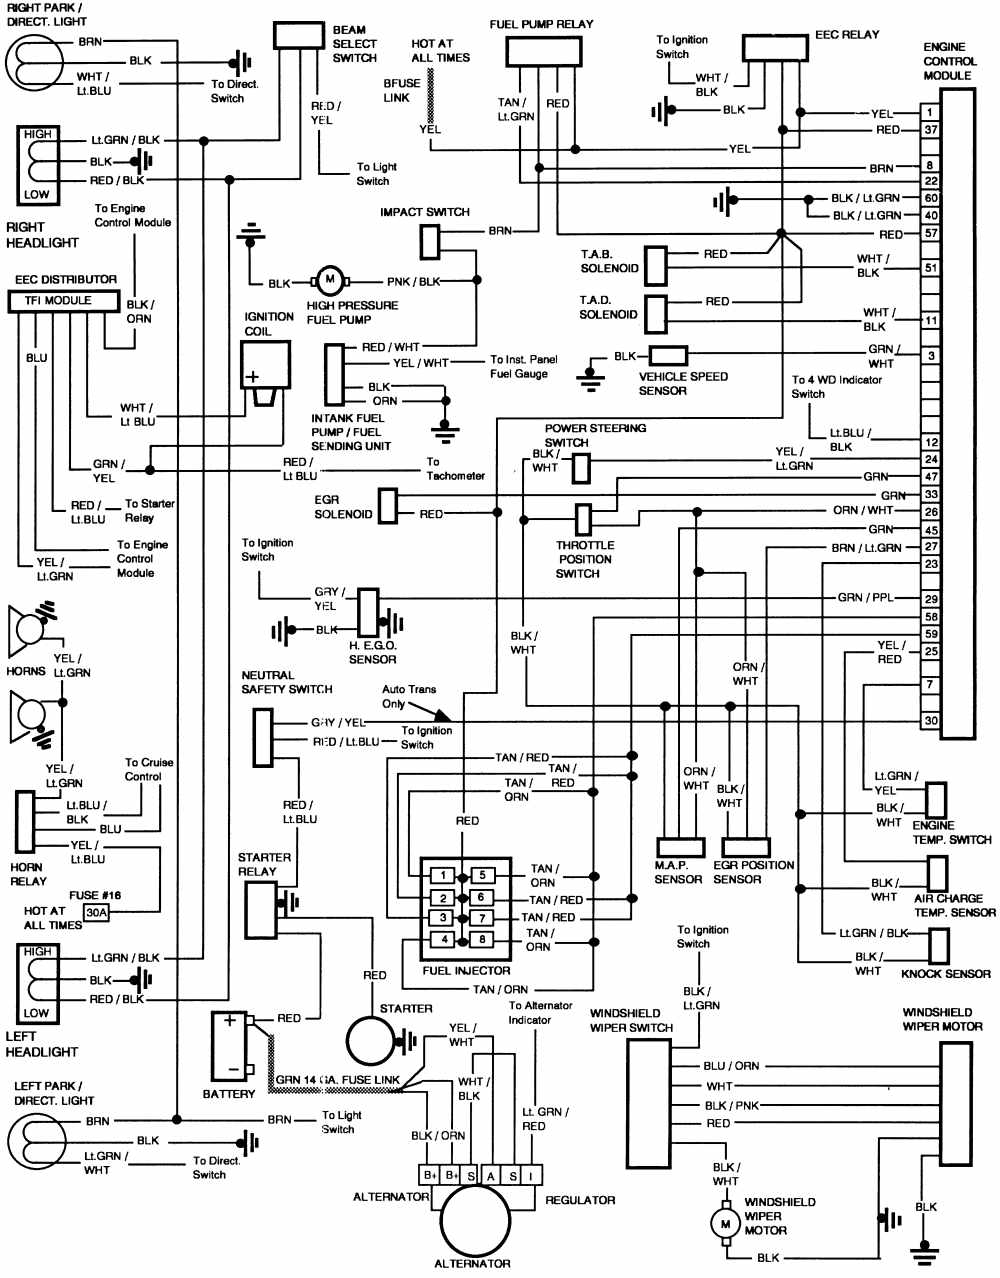 1995 jeep radio wiring diagram pdf with 2014 Ford F350 Fuse Diagram on Jeep 56ncm Wrangler X Need Stereo Wiring Diagram together with RepairGuideContent likewise Where Is The Radio Fuse On A 2001 Mustang moreover 1997 Infiniti Qx4 Wiring Diagram And Electrical System Service And Troubleshooting also 96 Taurus Fuse Box.